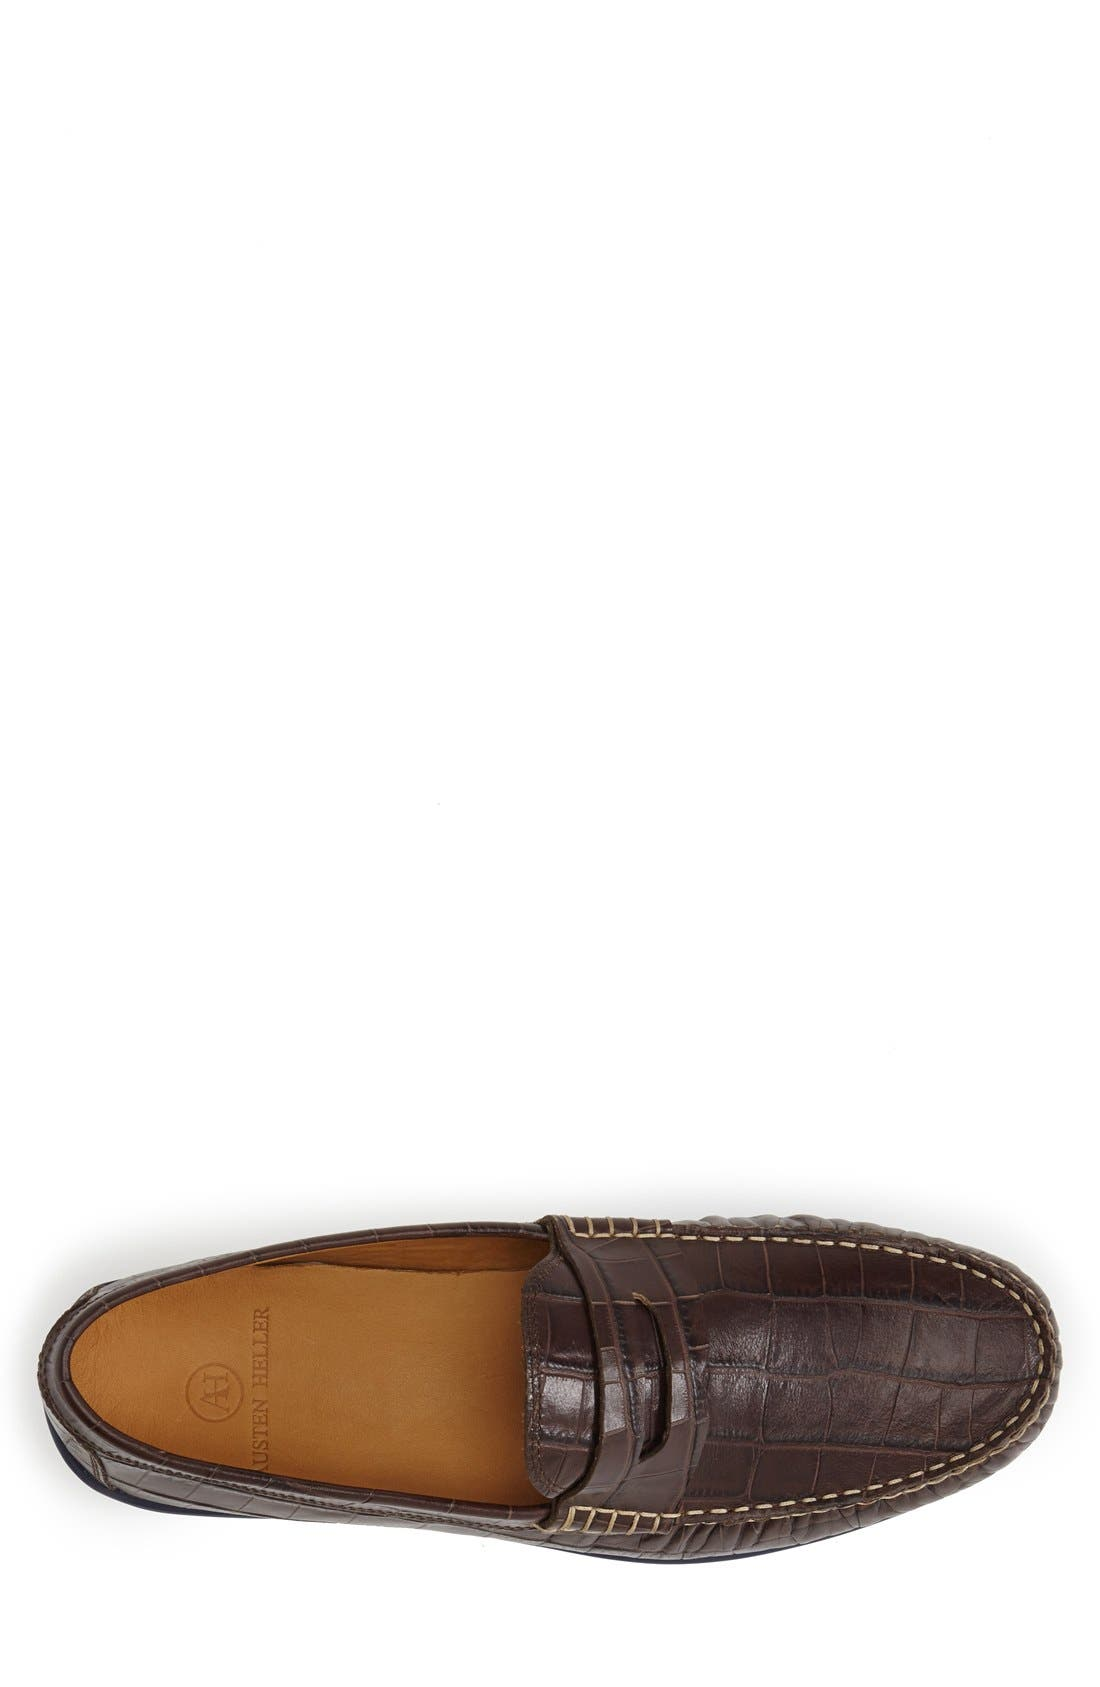 'Waverly' Leather Penny Loafer,                             Alternate thumbnail 6, color,                             BROWN